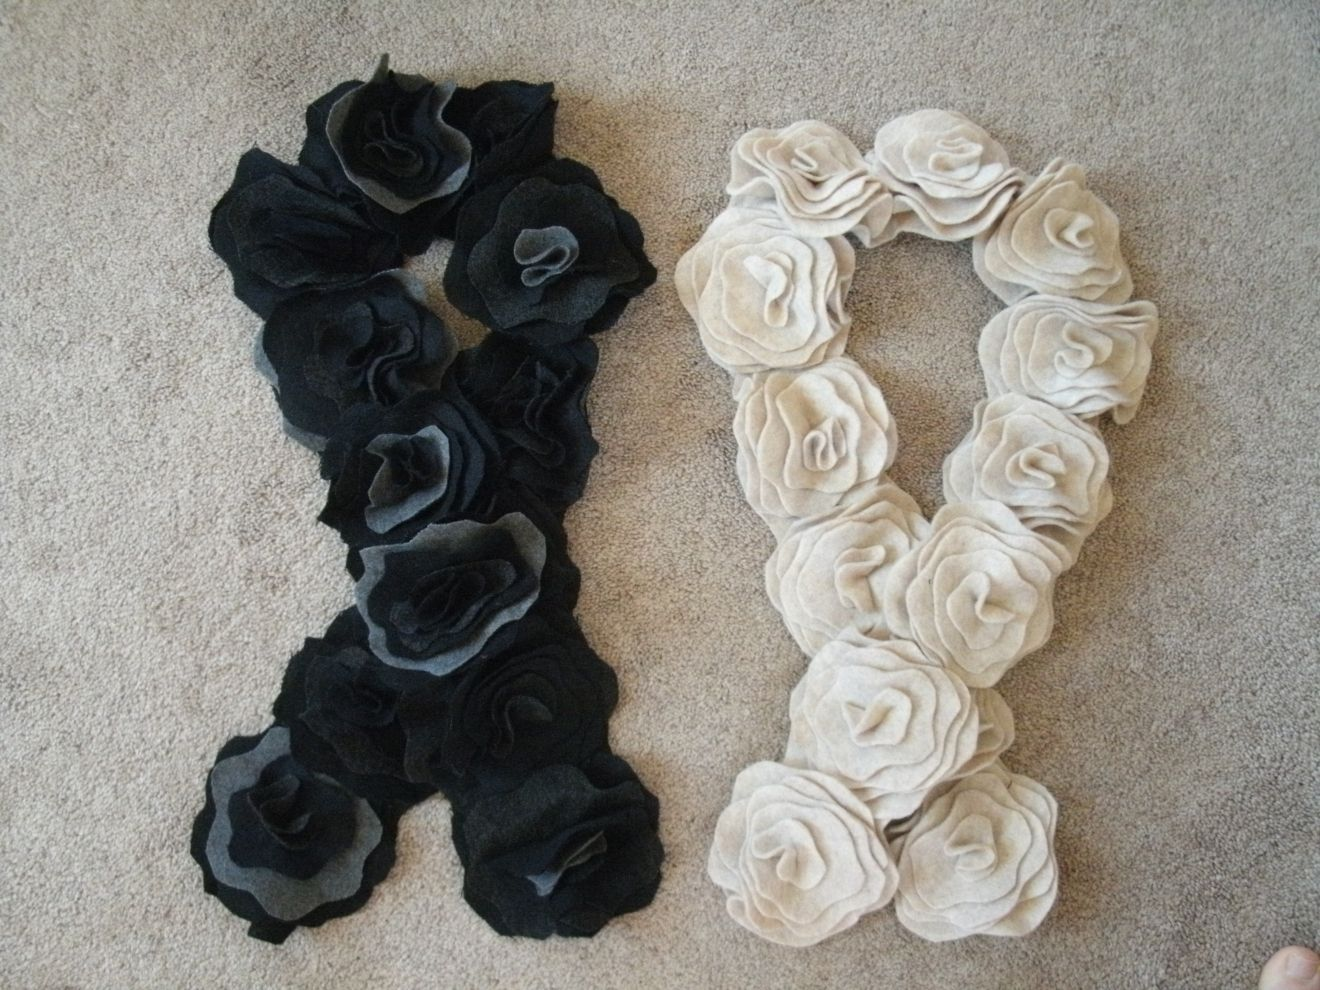 Two of my rosette scarves from the tutorial at watchmedaddy.blogspot.com.  The gray/black one made from felted wool skirts and the light one from felt.  They are very easy and fun to make!